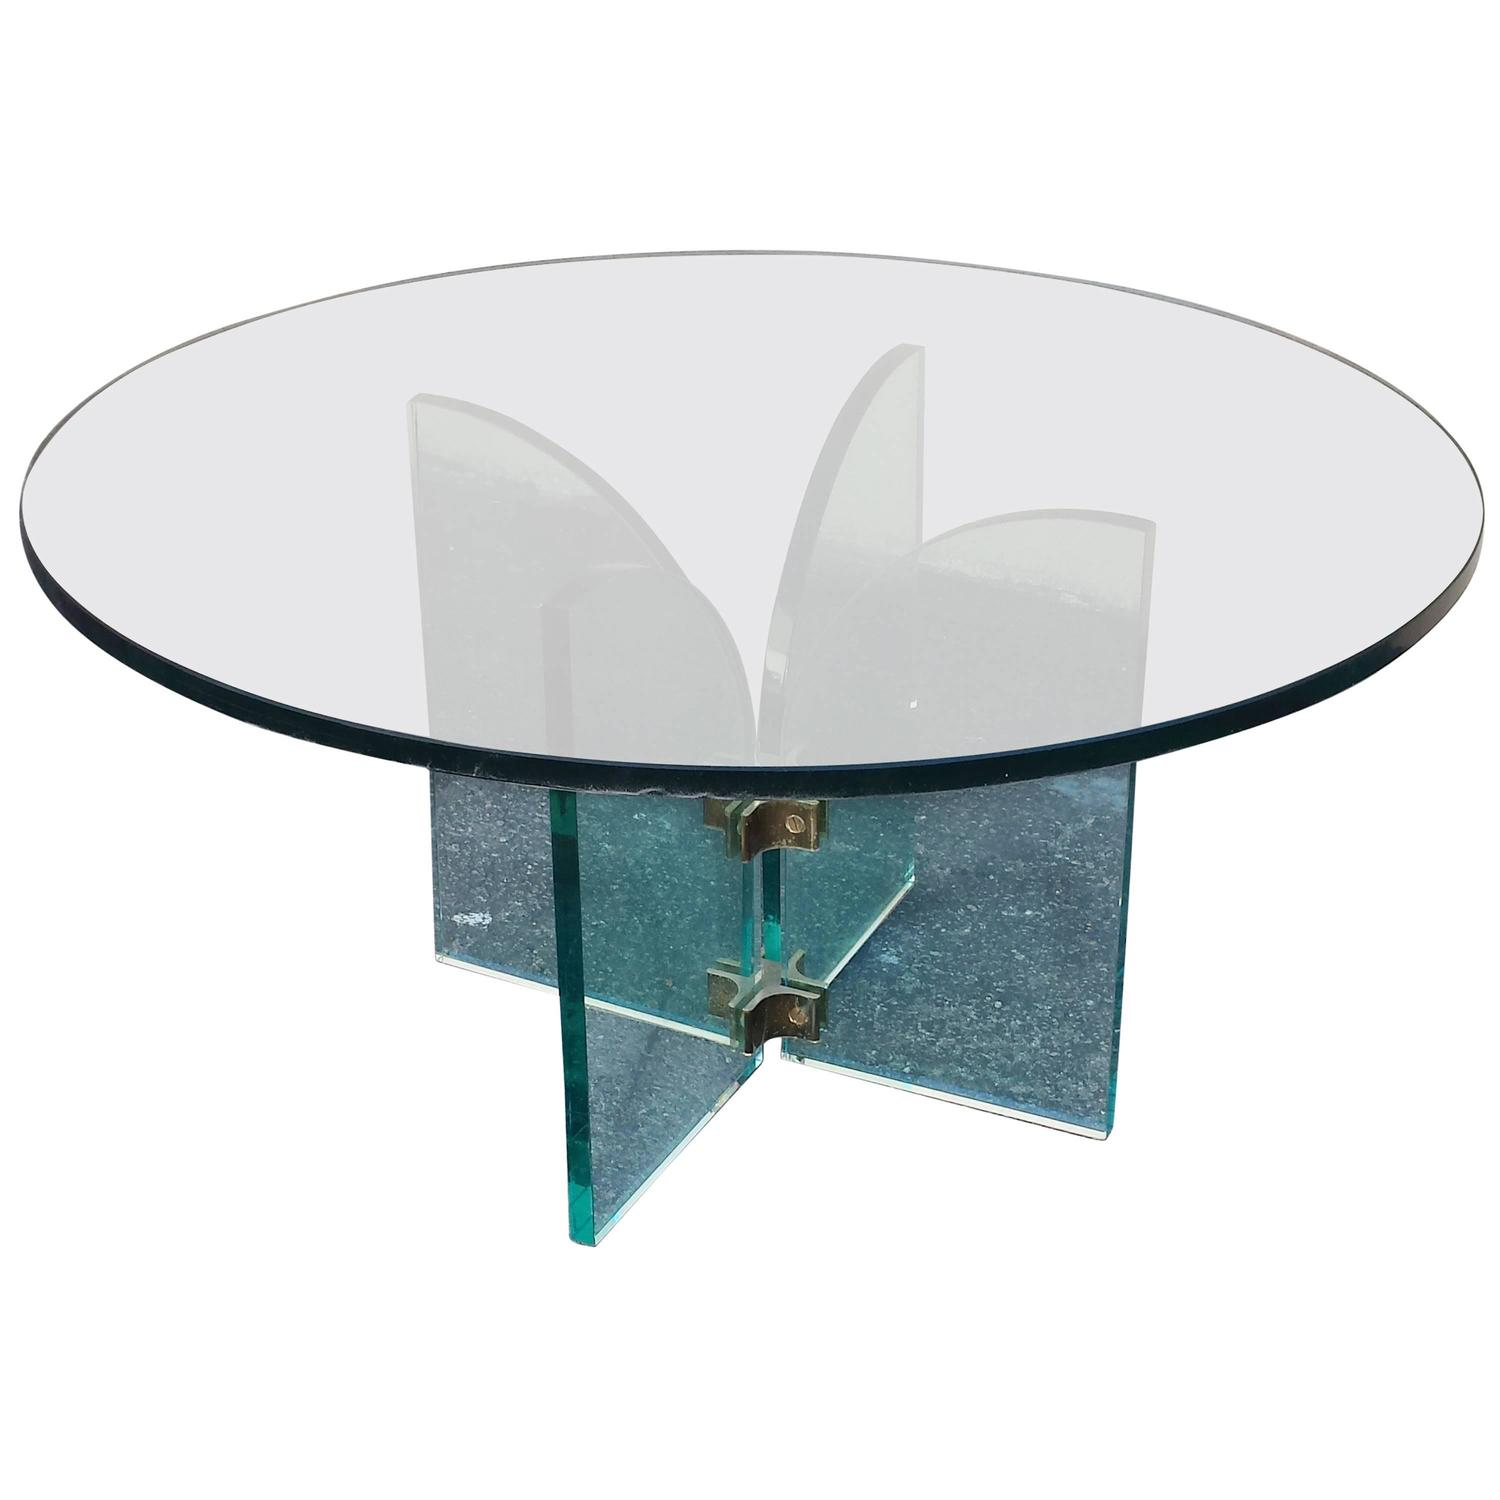 Coffee table mid century modern style round glass coffee for Round glass coffee tables for sale